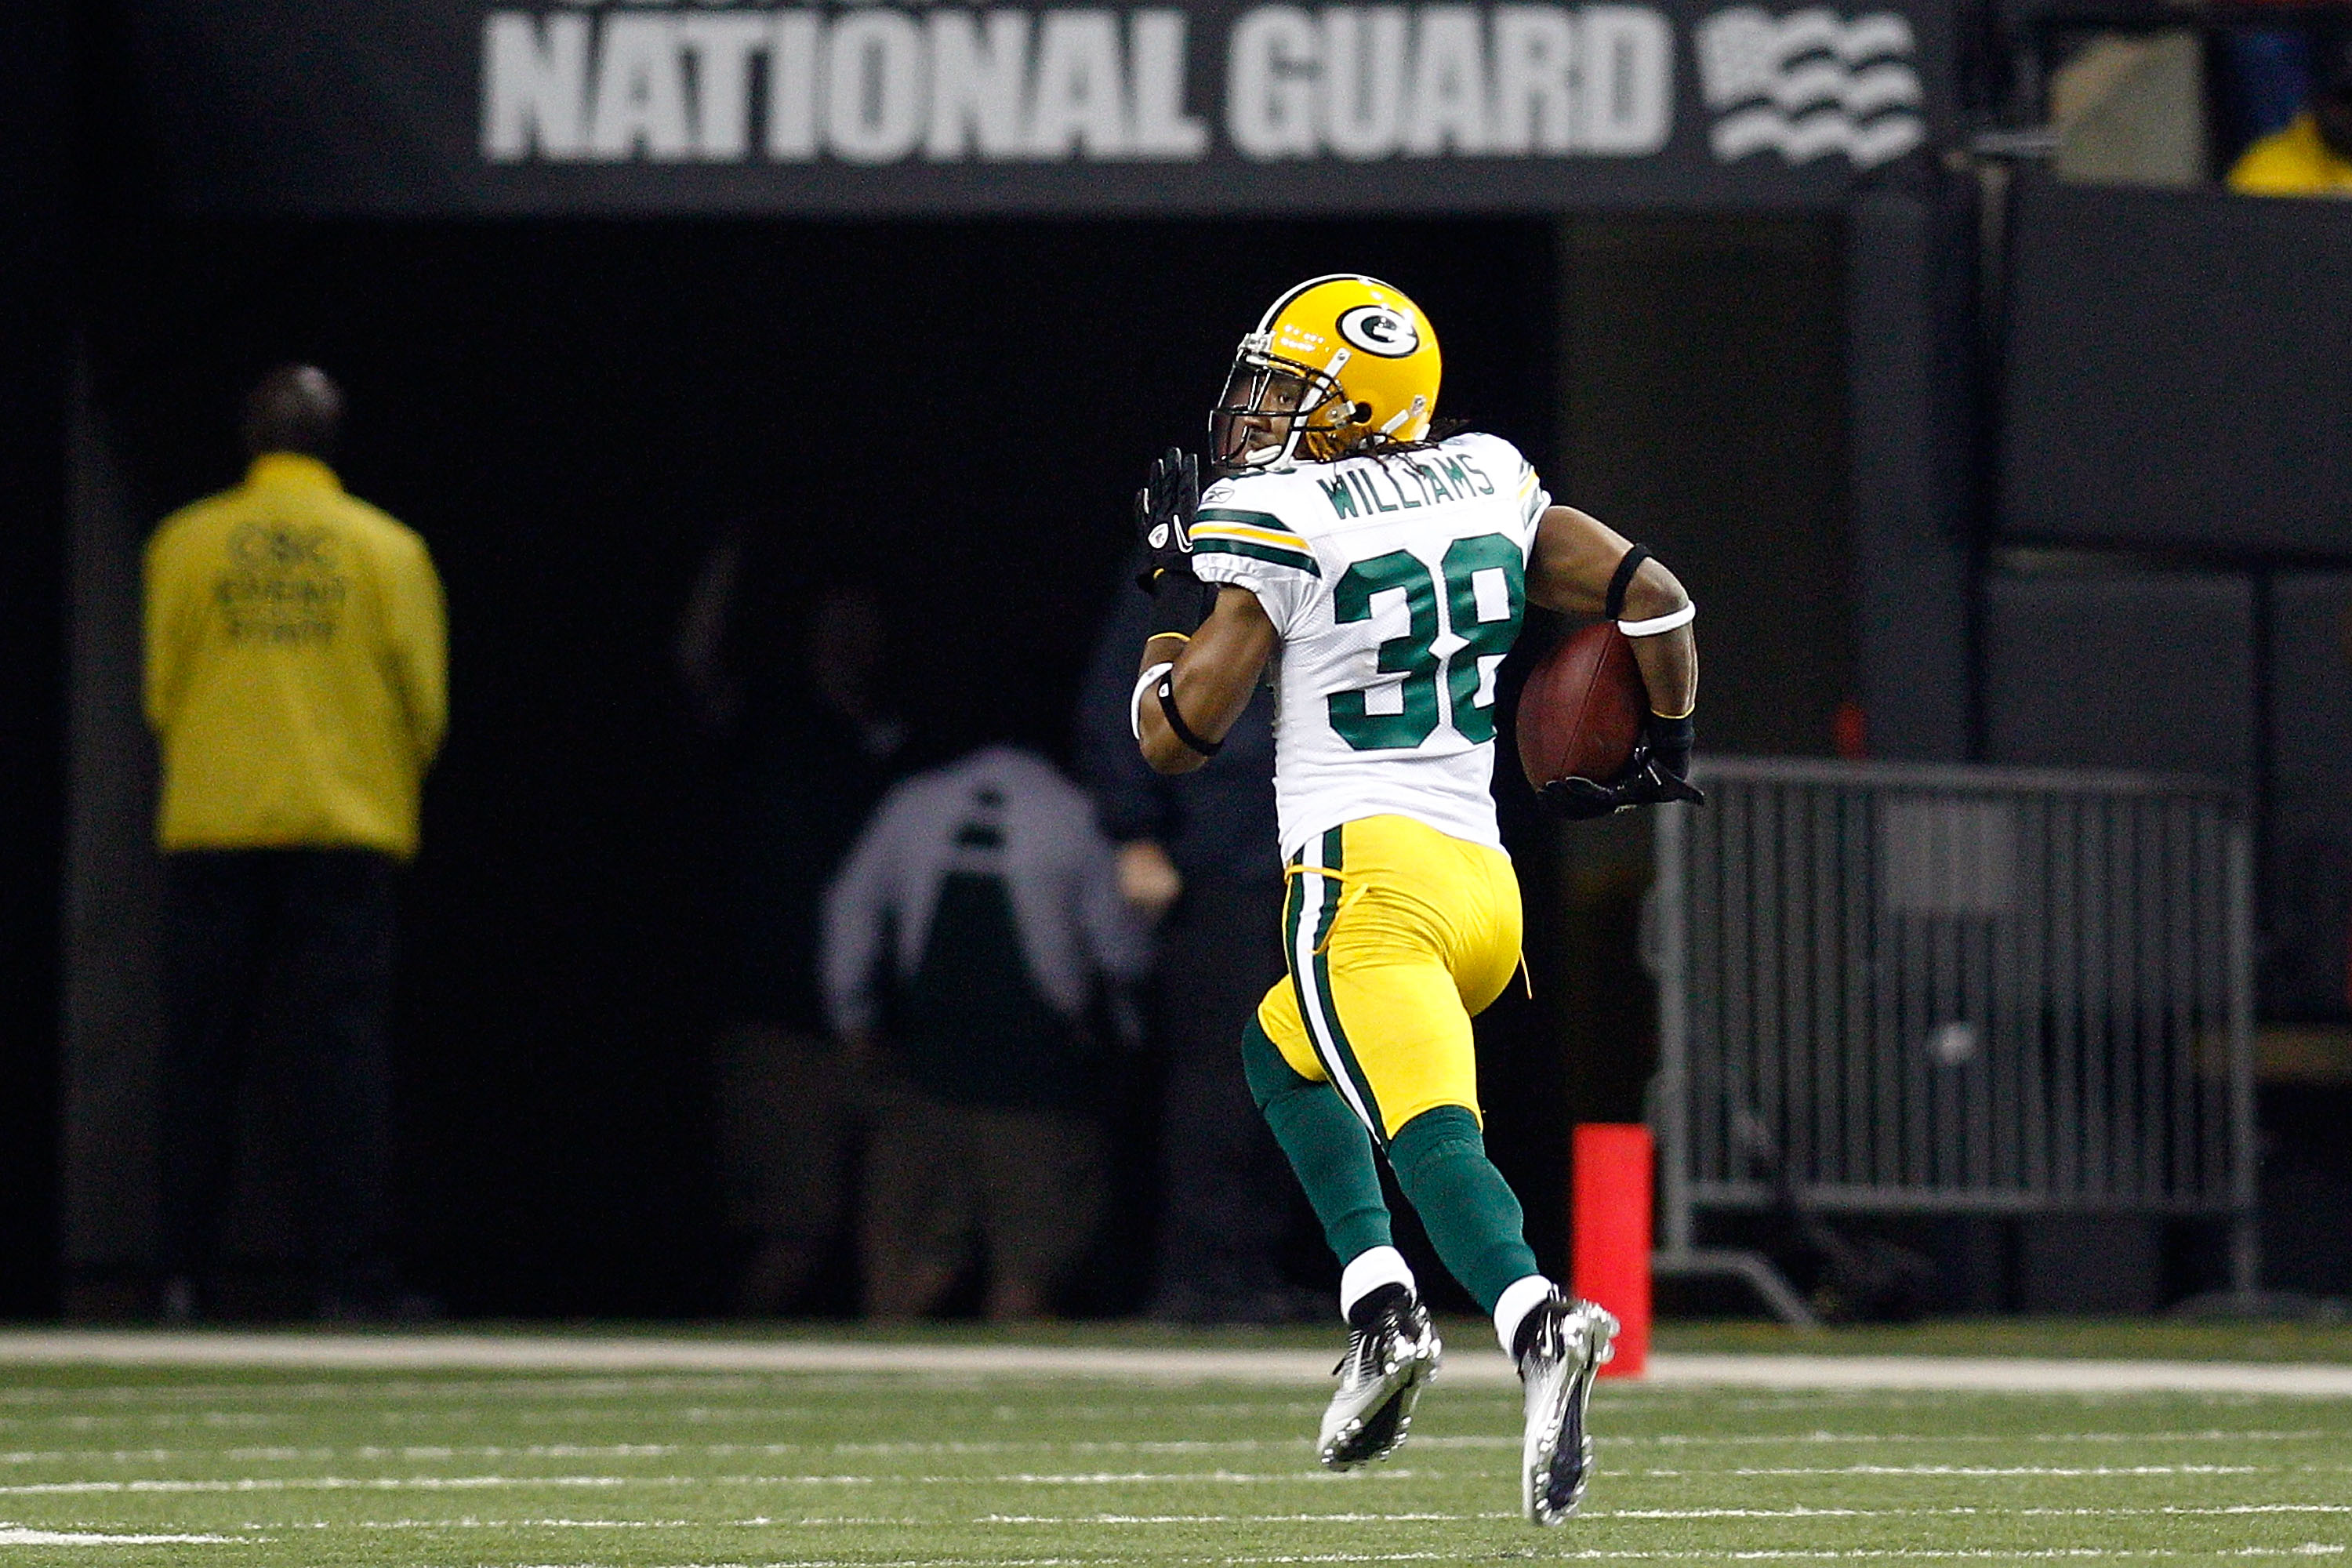 ATLANTA, GA - JANUARY 15:  Tramon Williams ##8 of the Green Bay Packers returns an interception 70-yards for a touchdown in the second quarter against the Atlanta Falcons during their 2011 NFC divisional playoff game at Georgia Dome on January 15, 2011 in